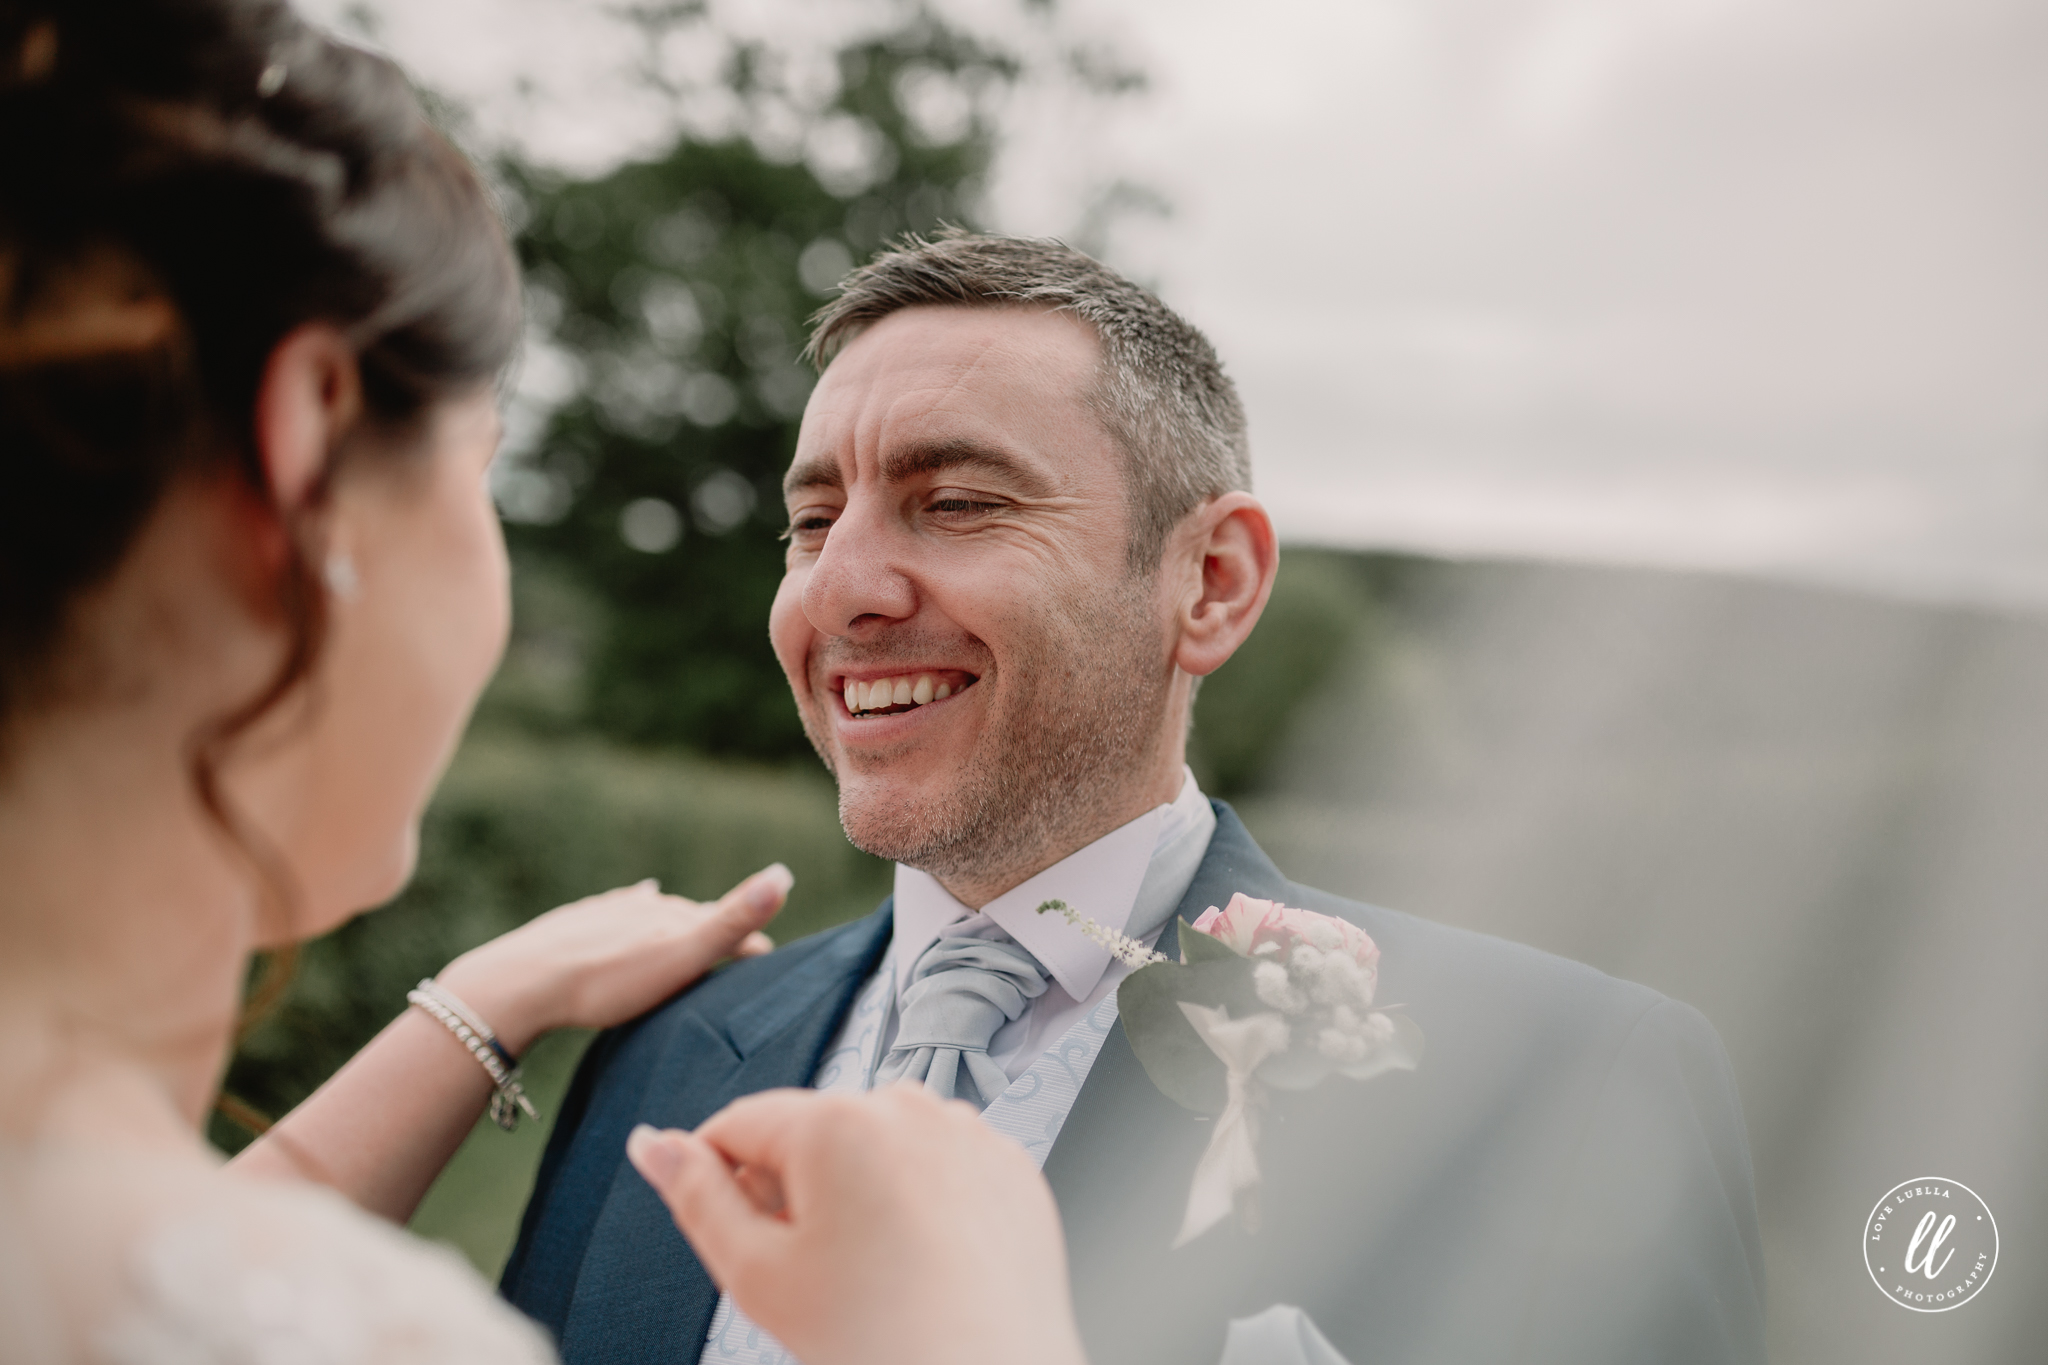 The groom looking at his wife with pride